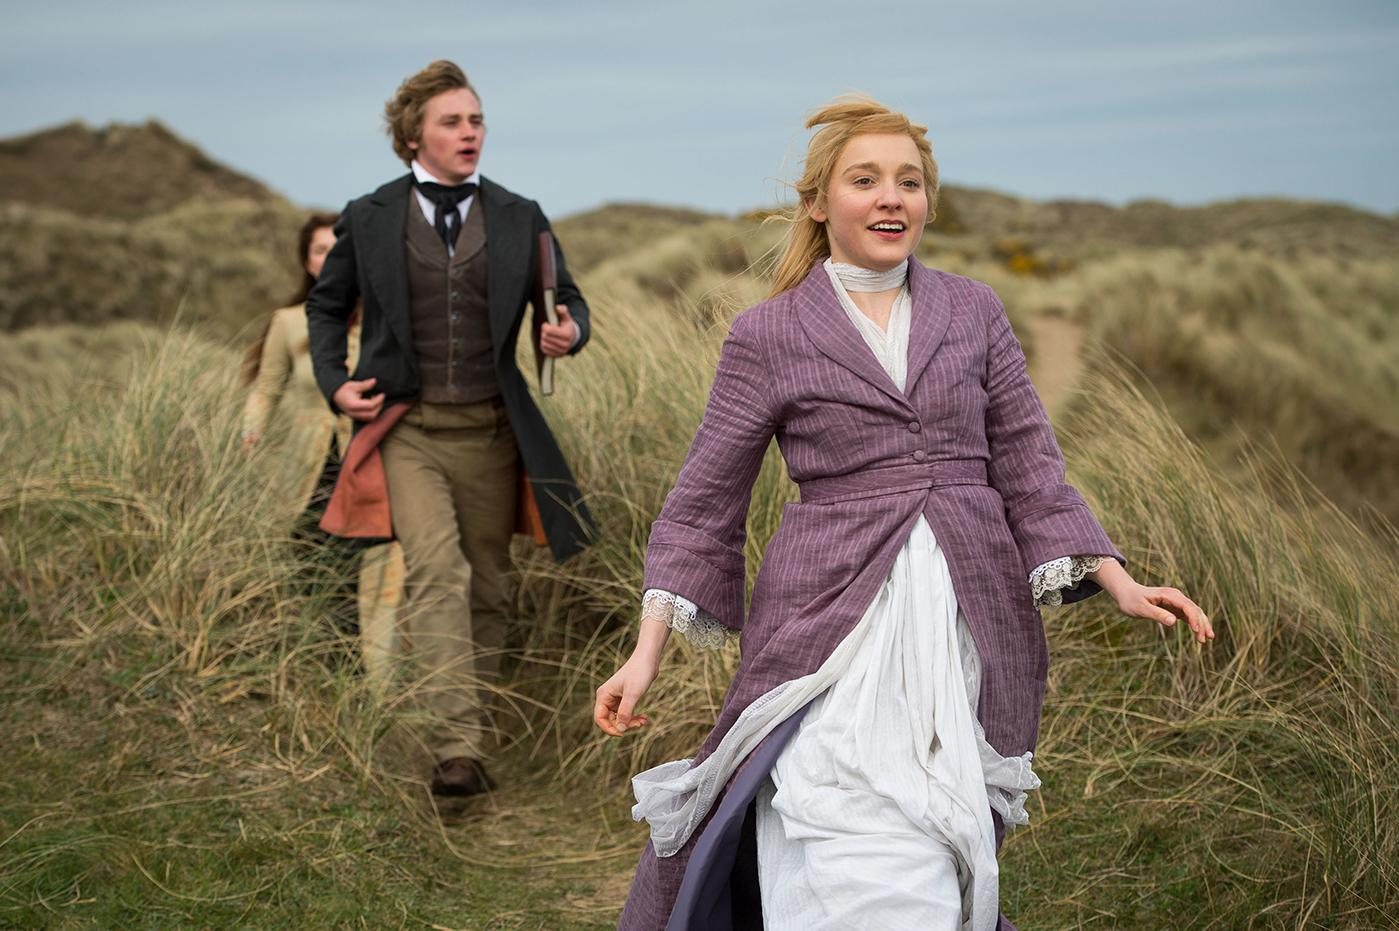 Ben Hardy as Walter Hartright and Olivia Vinall as Laura Fairlie in the Woman in White. Photo: The Woman in White Productions Ltd. / Steffan Hill / Origin Pictures